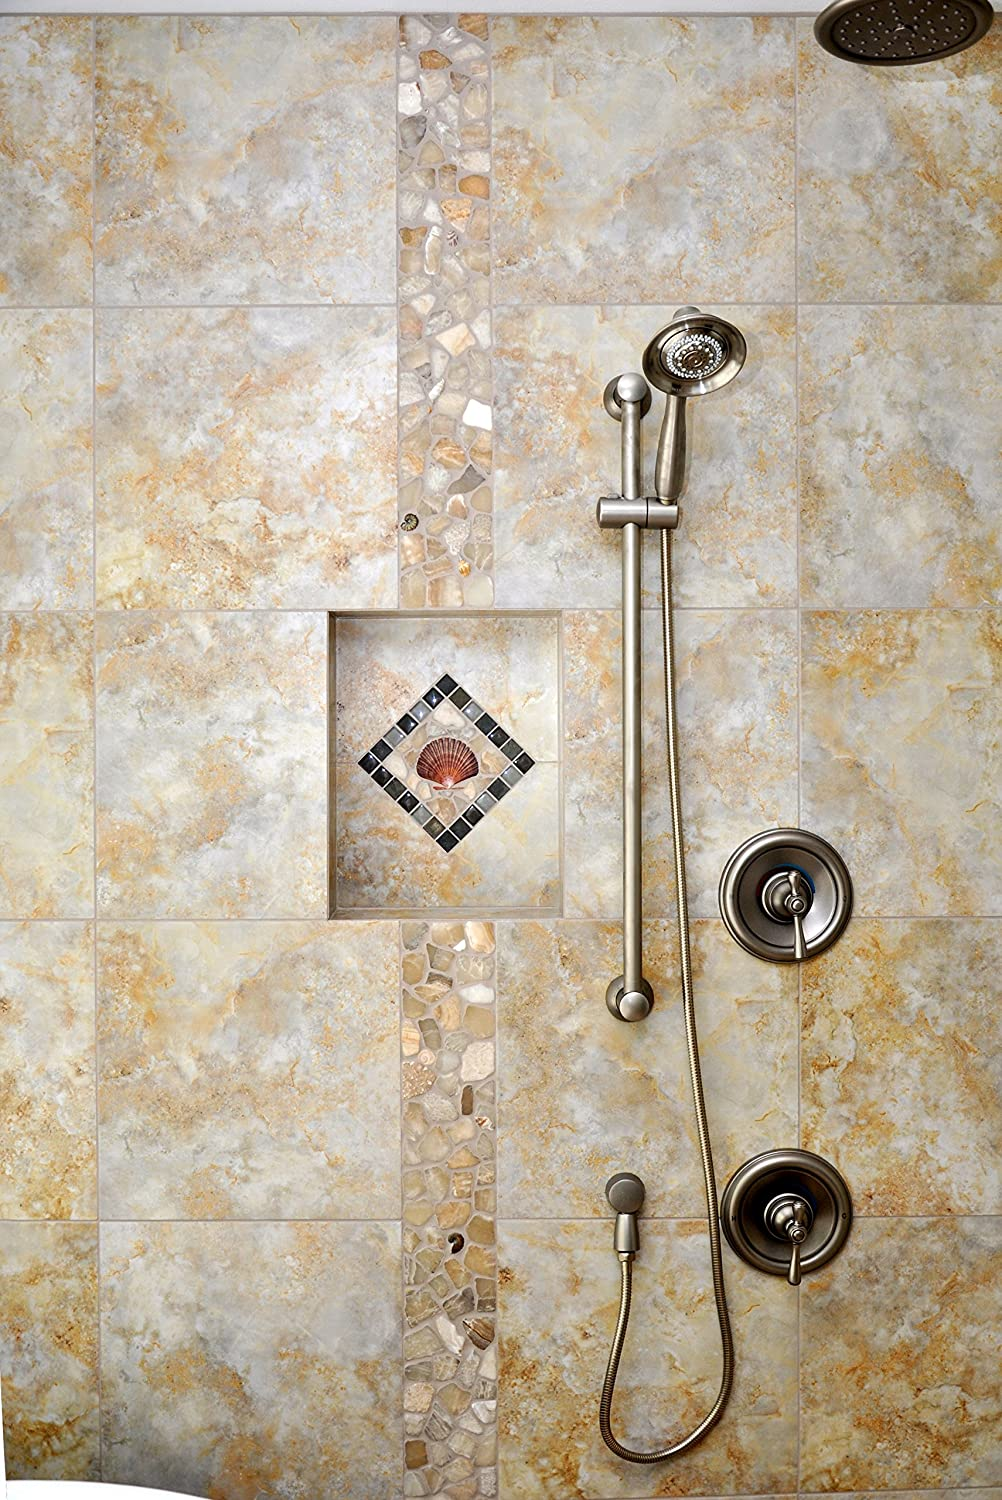 Amazon.com: Shower Niche 12x12 Finished Tiled Size 14x14 Rough ...